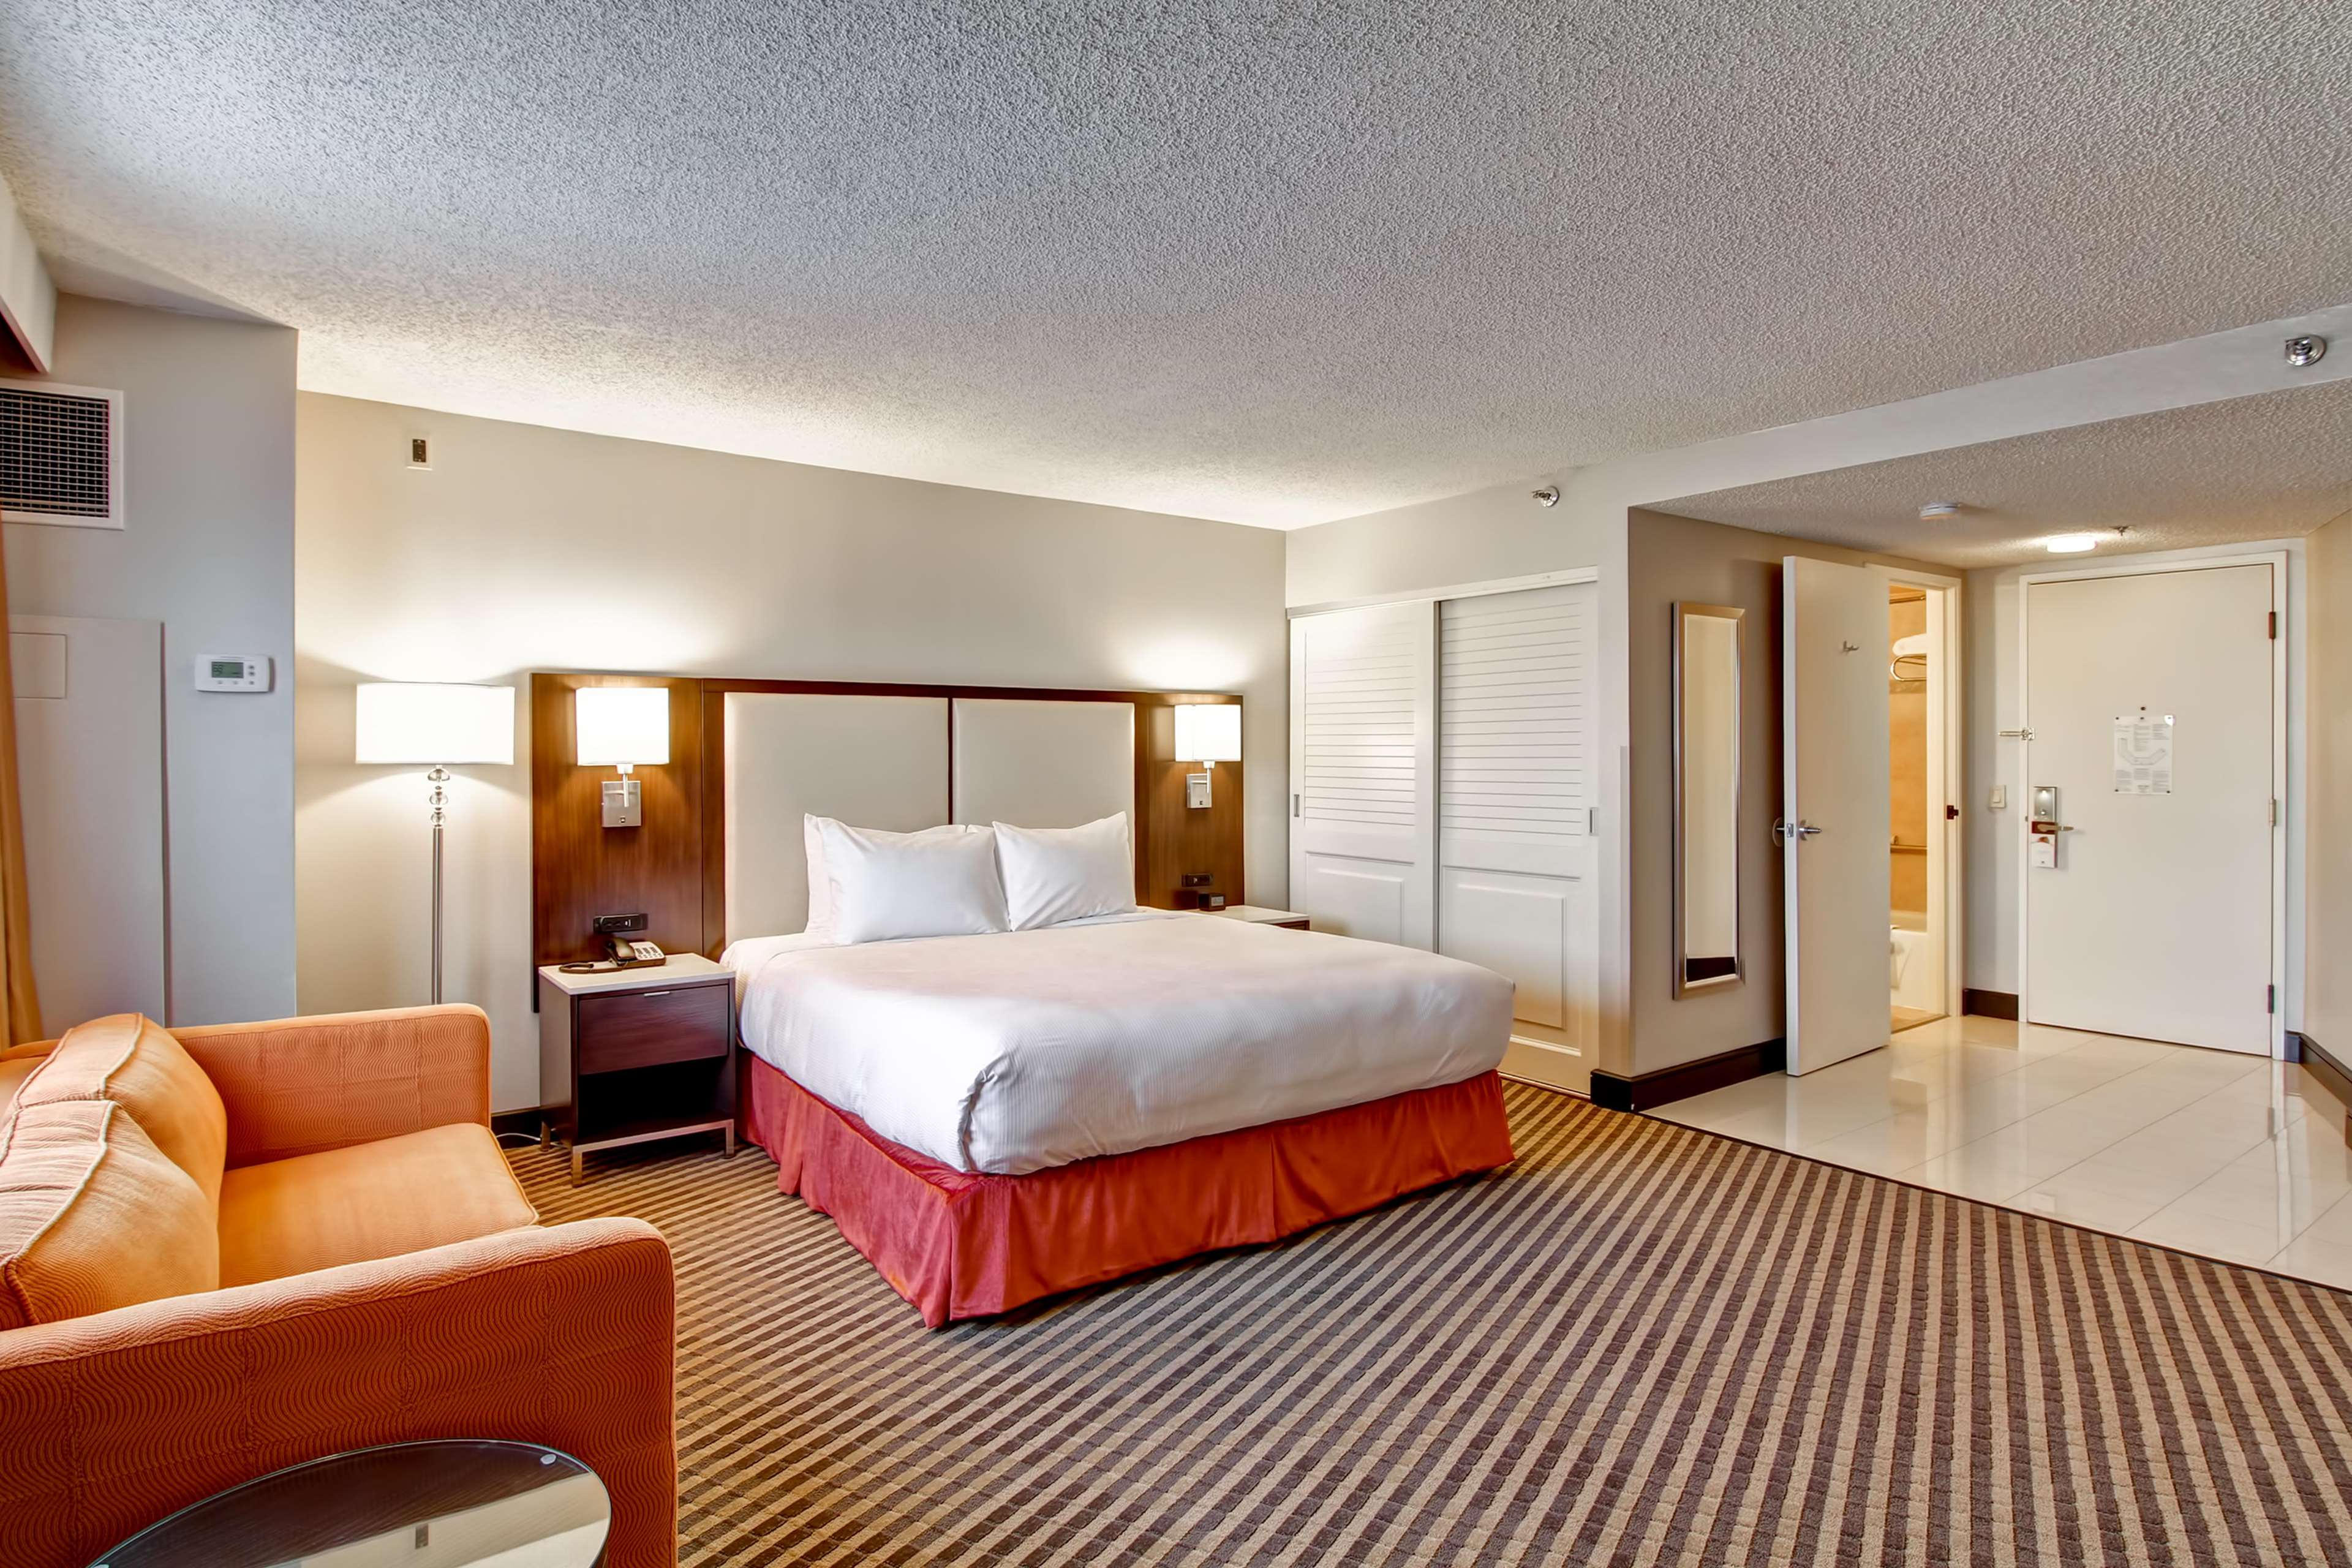 DoubleTree by Hilton Hotel Pleasanton at the Club image 25